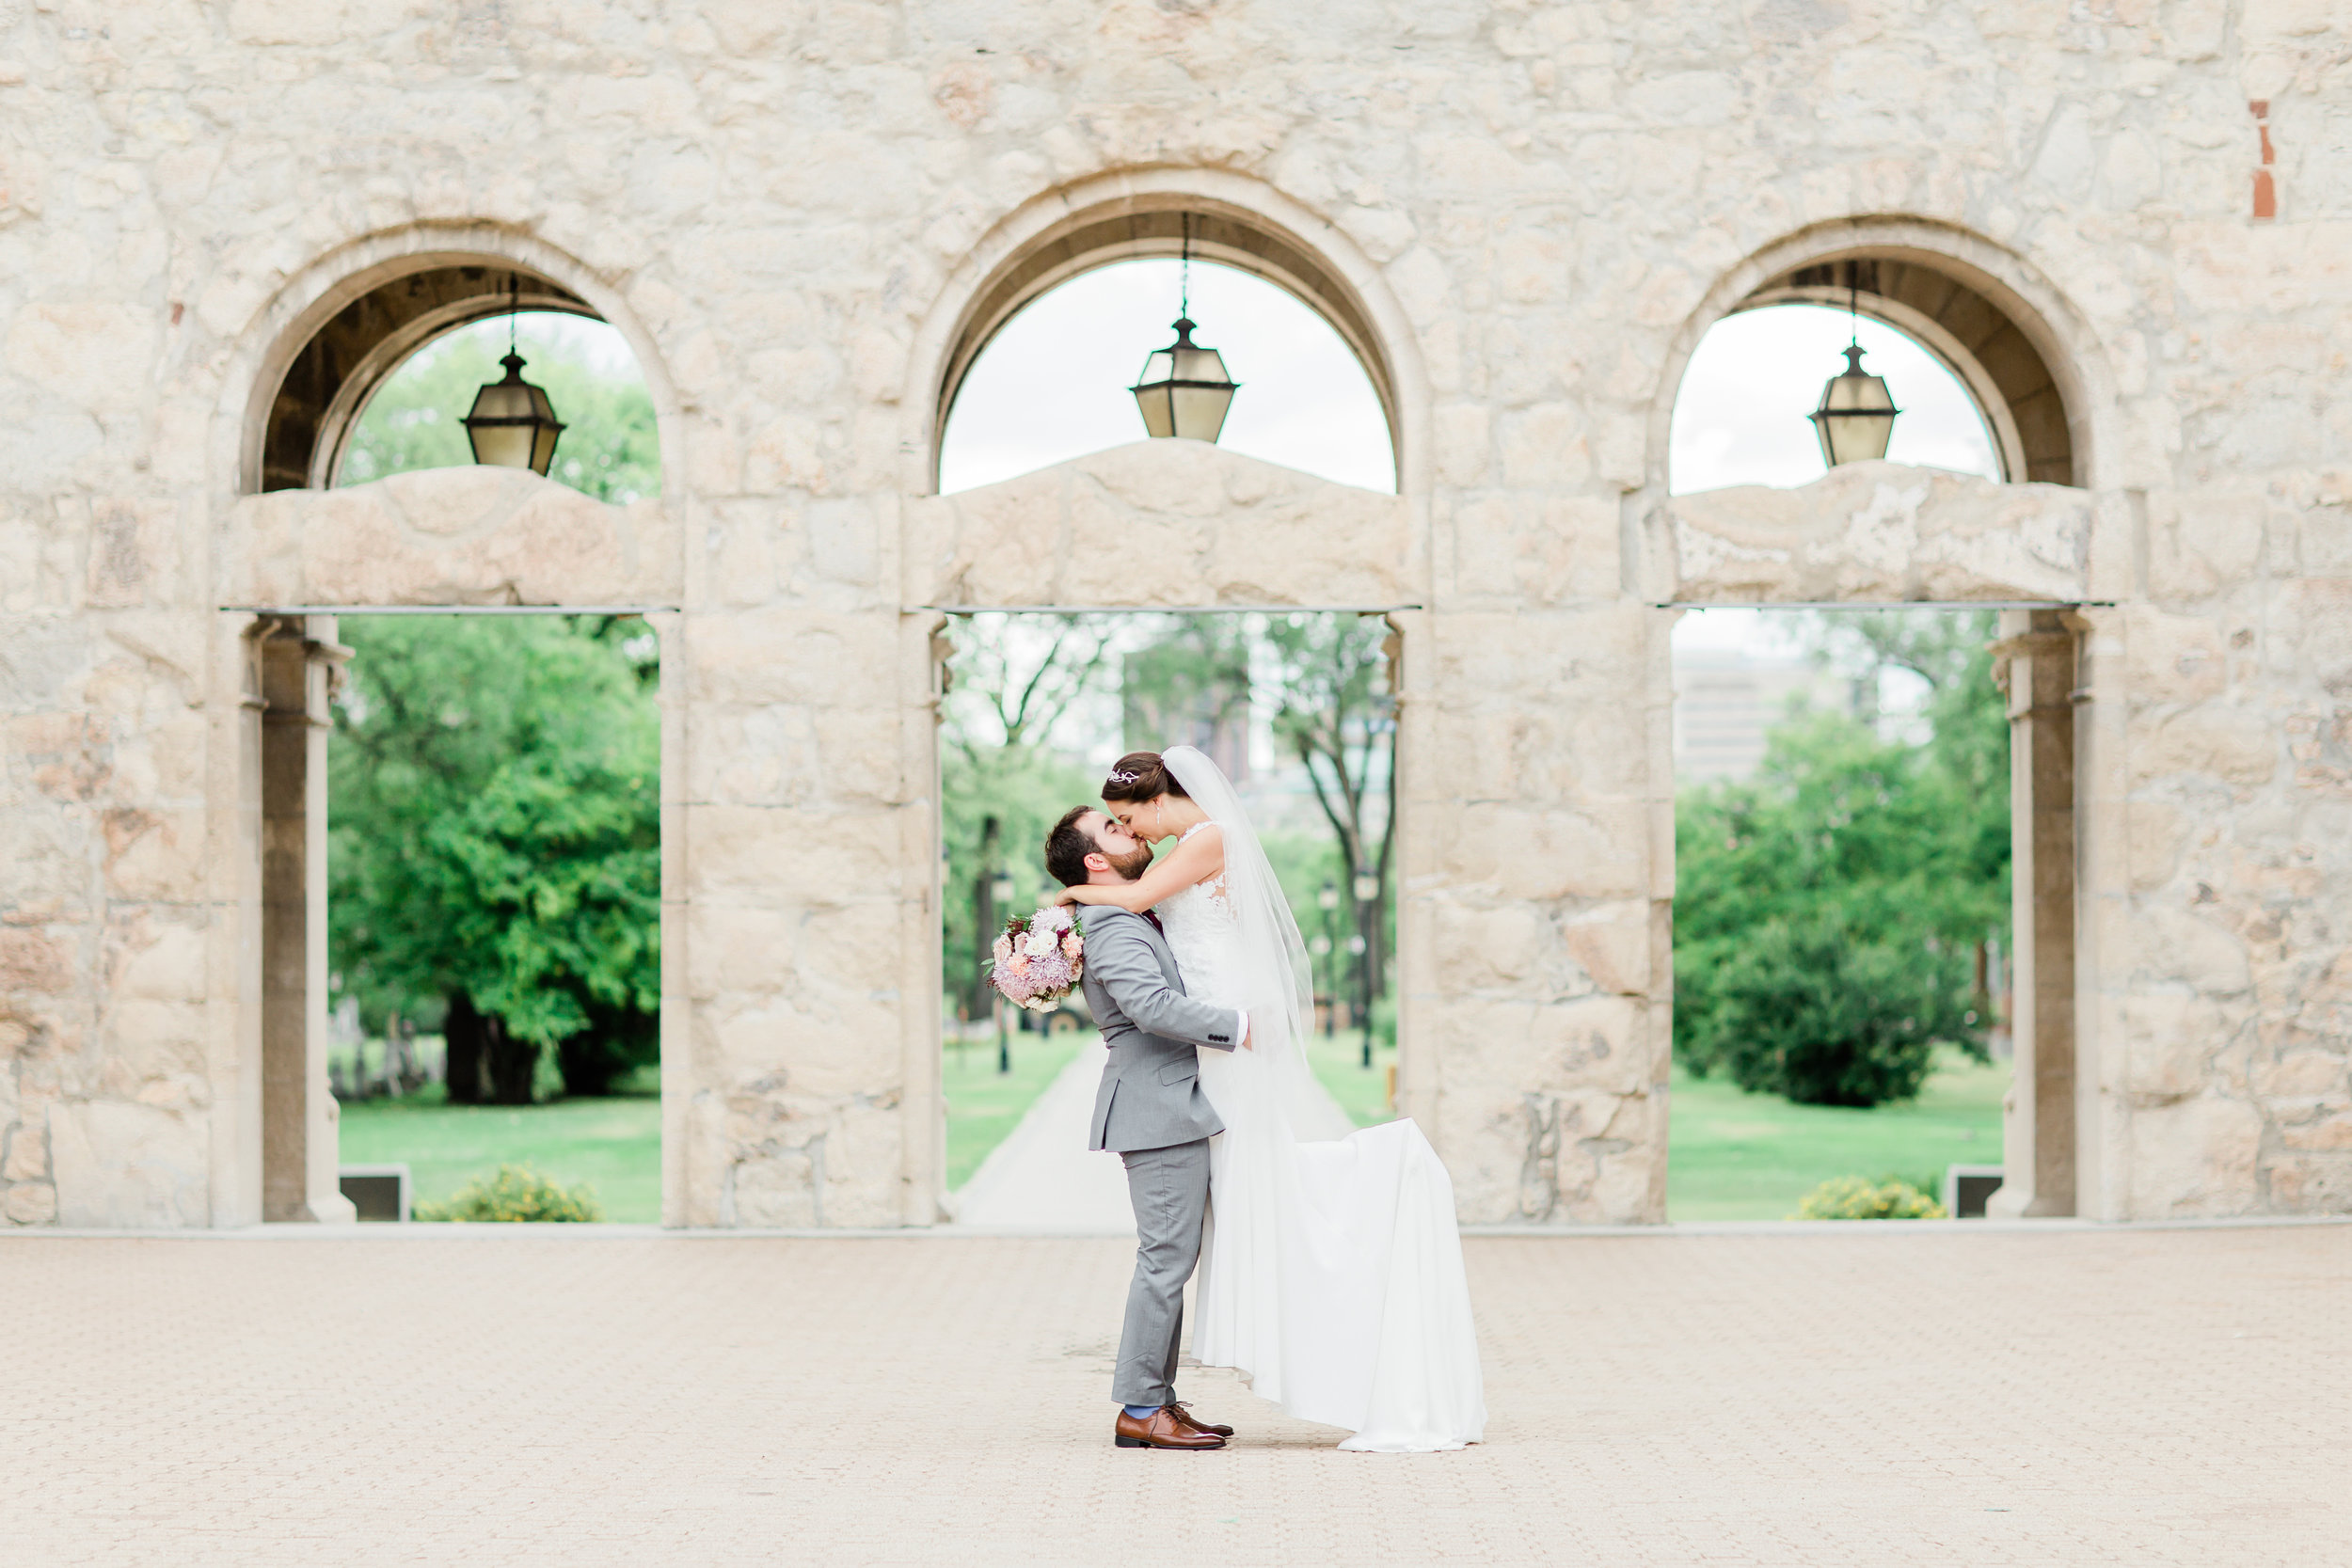 Marta & Alex's Beautiful Fort Garry Wedding